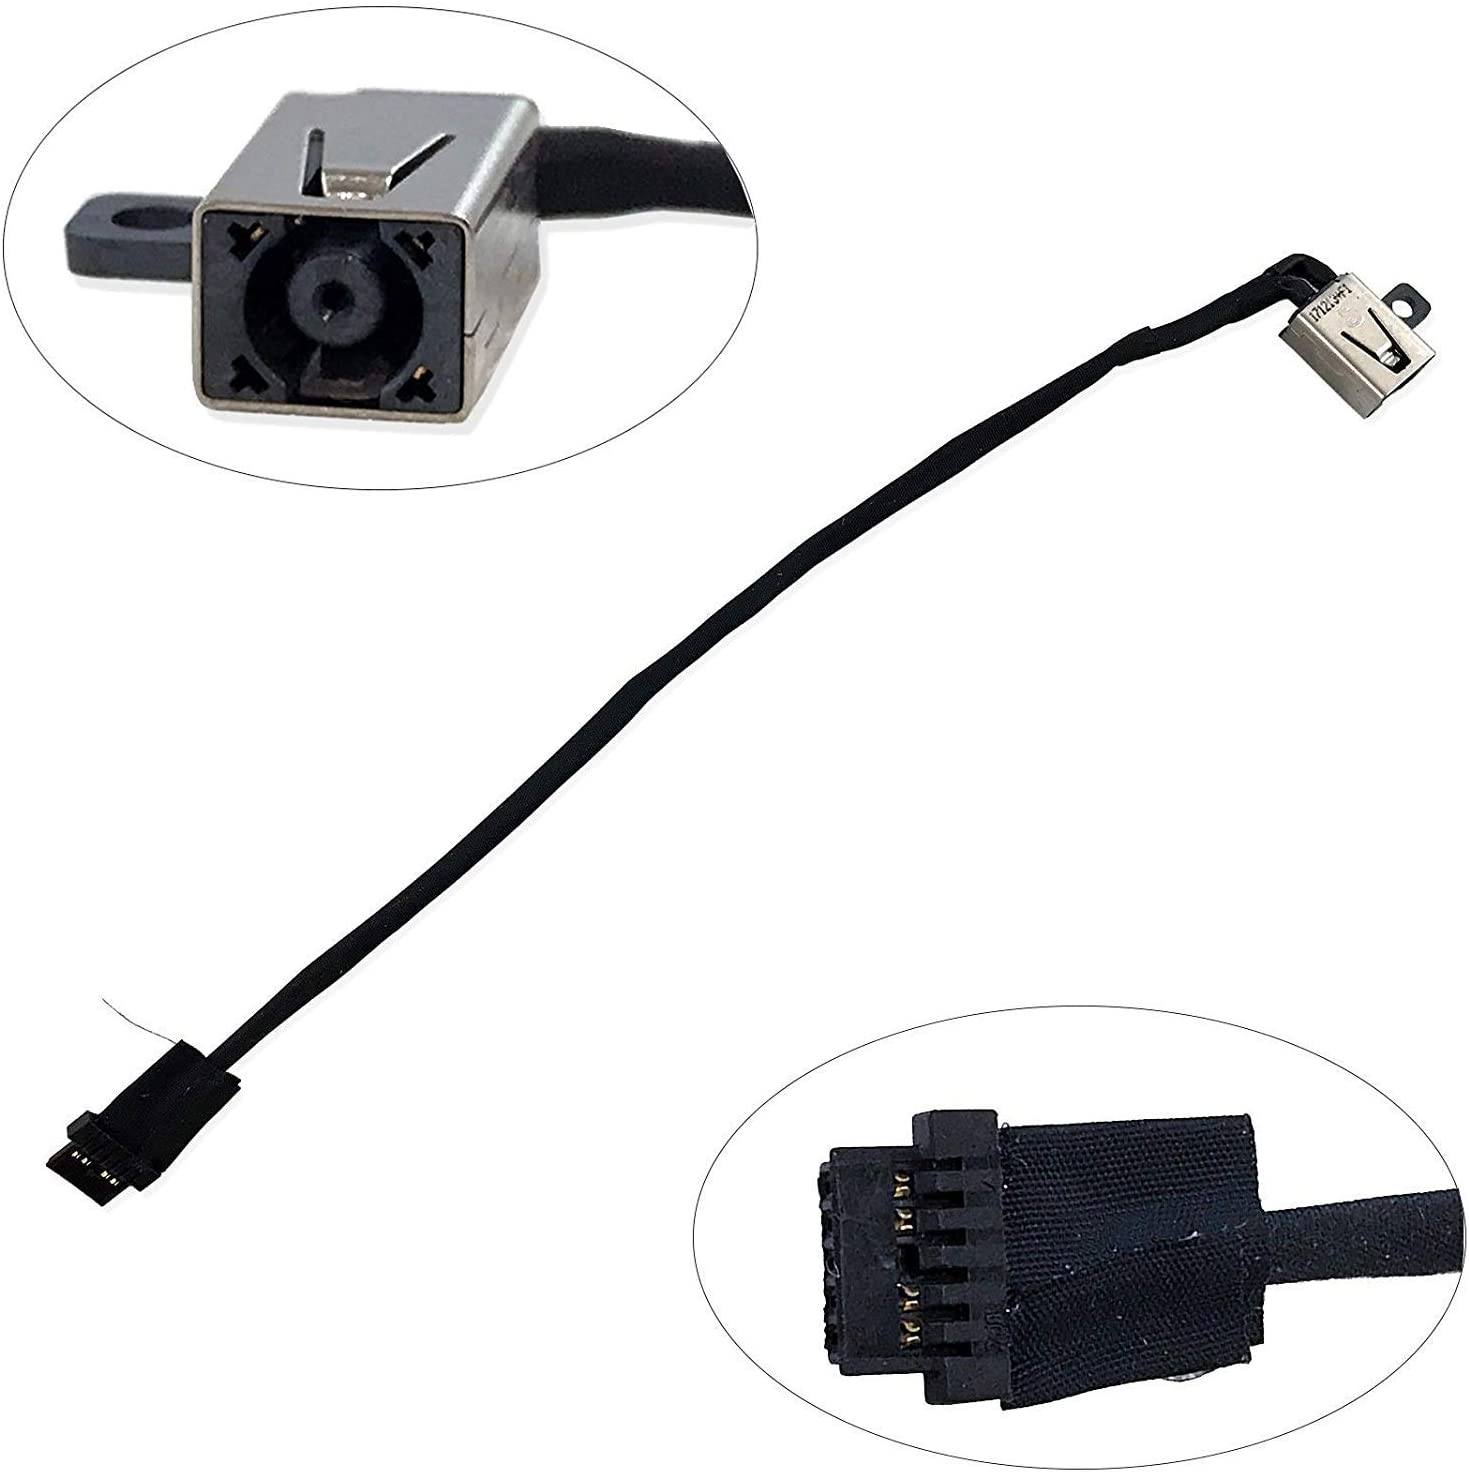 Replacement New DC Power Jack Harness Cable for HP Chromebook 11 G5 EE Series 918169-YD1